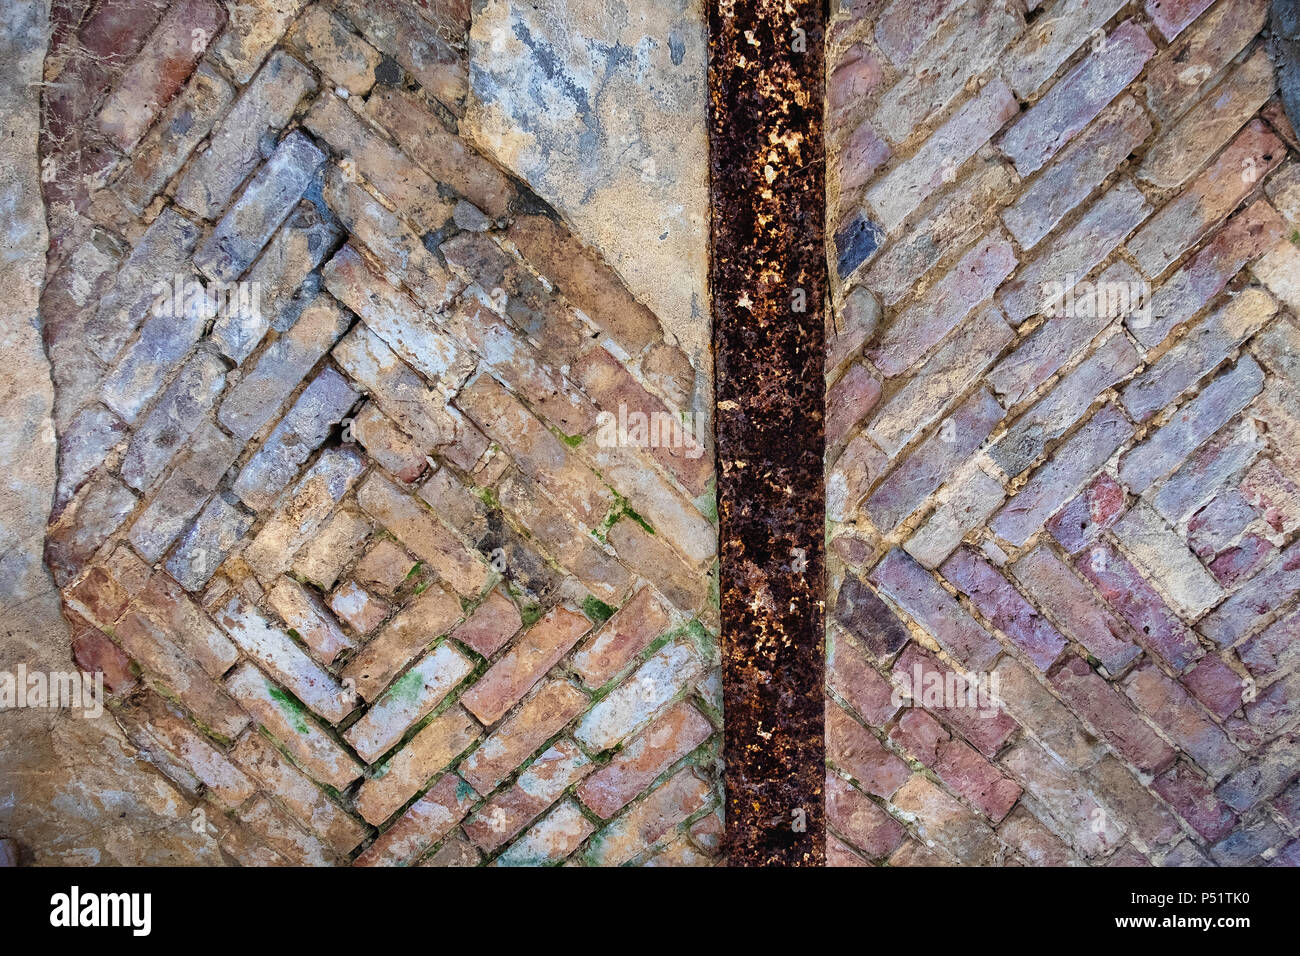 Urban Decay. Dilapidated old building detail, weather old brick wall with rusty irom beam. Brick pattern - Stock Image